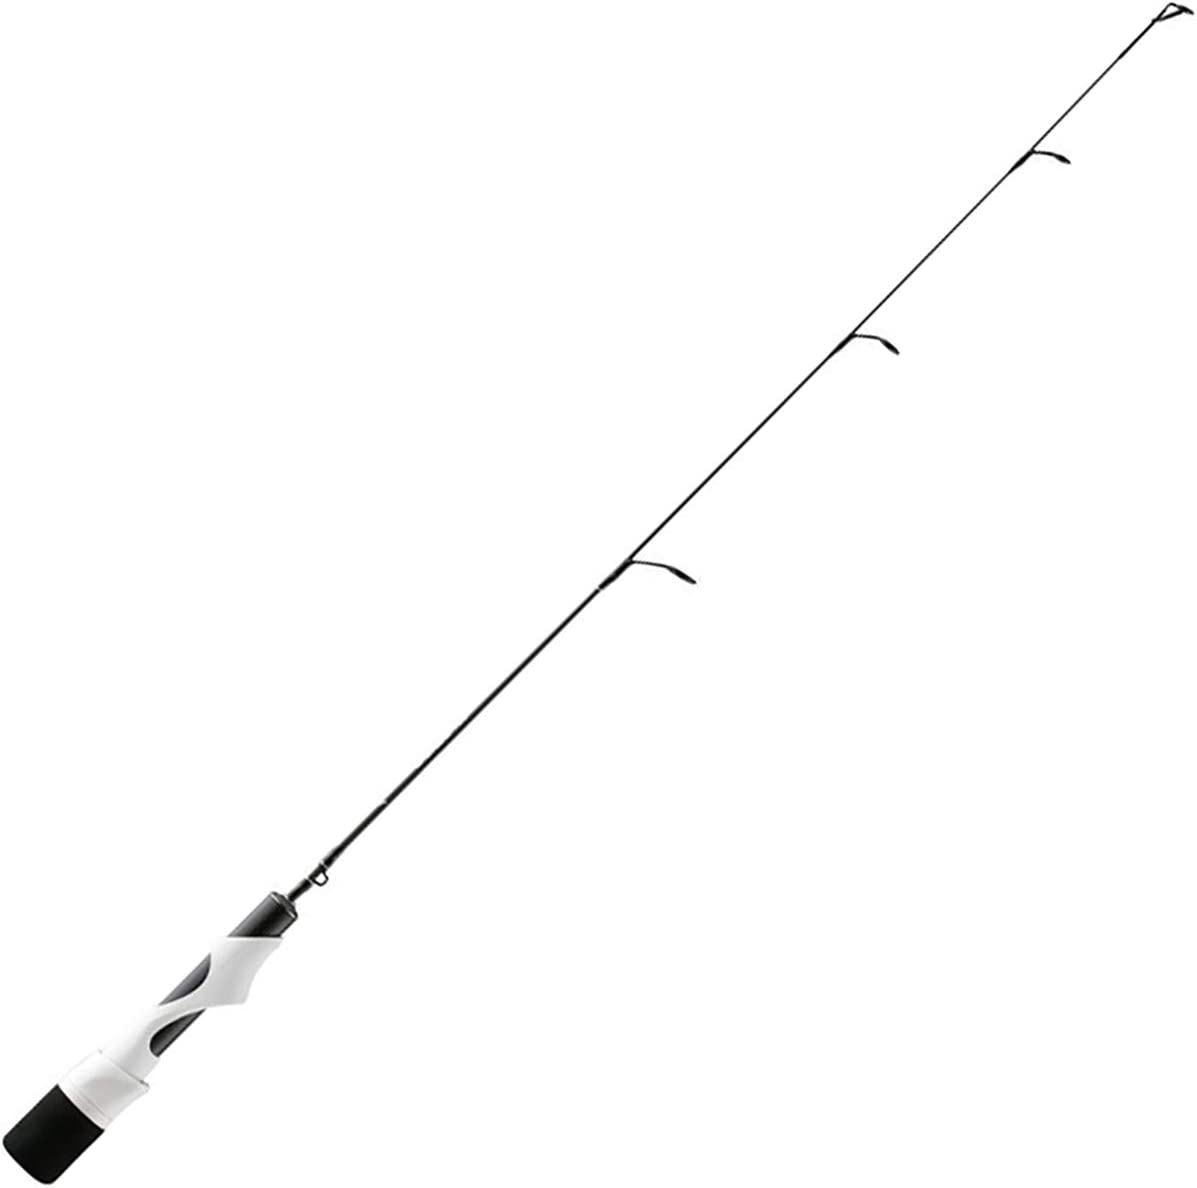 13 Fishing Wicked Ice Medium Rod